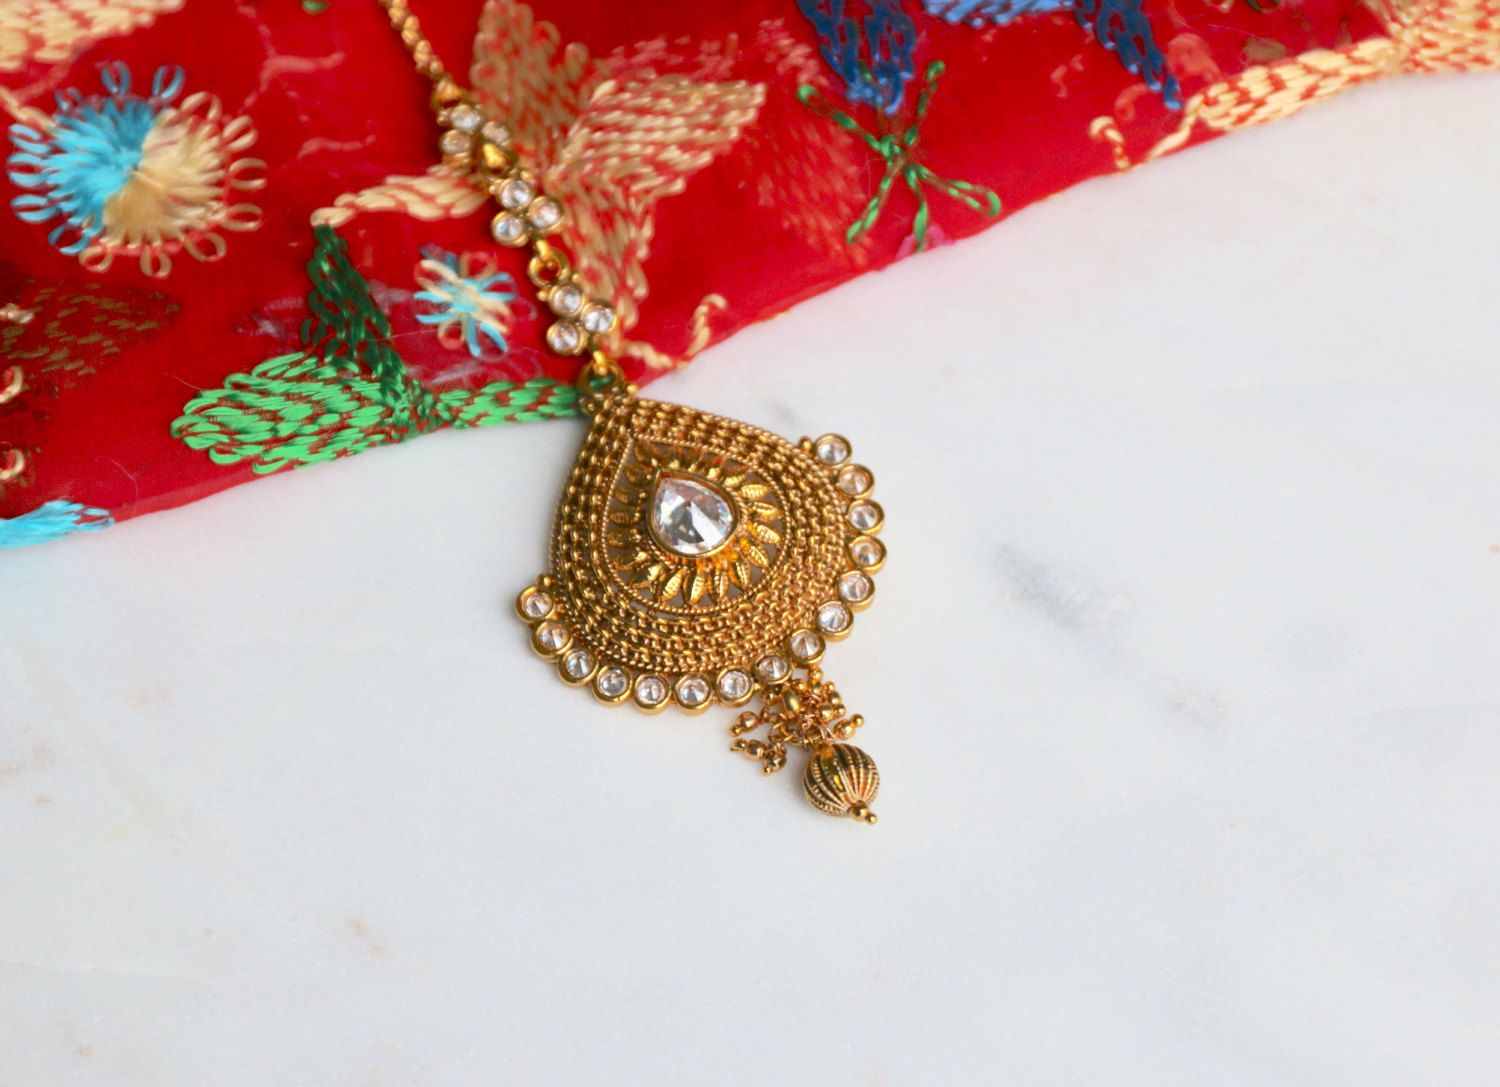 Golden maang tikka designs bridal jewellery bridal maang - Get A Head Start On Shopping For The Wedding Season And Check Out The New Maang Tikkas I Ve Added To My Shop